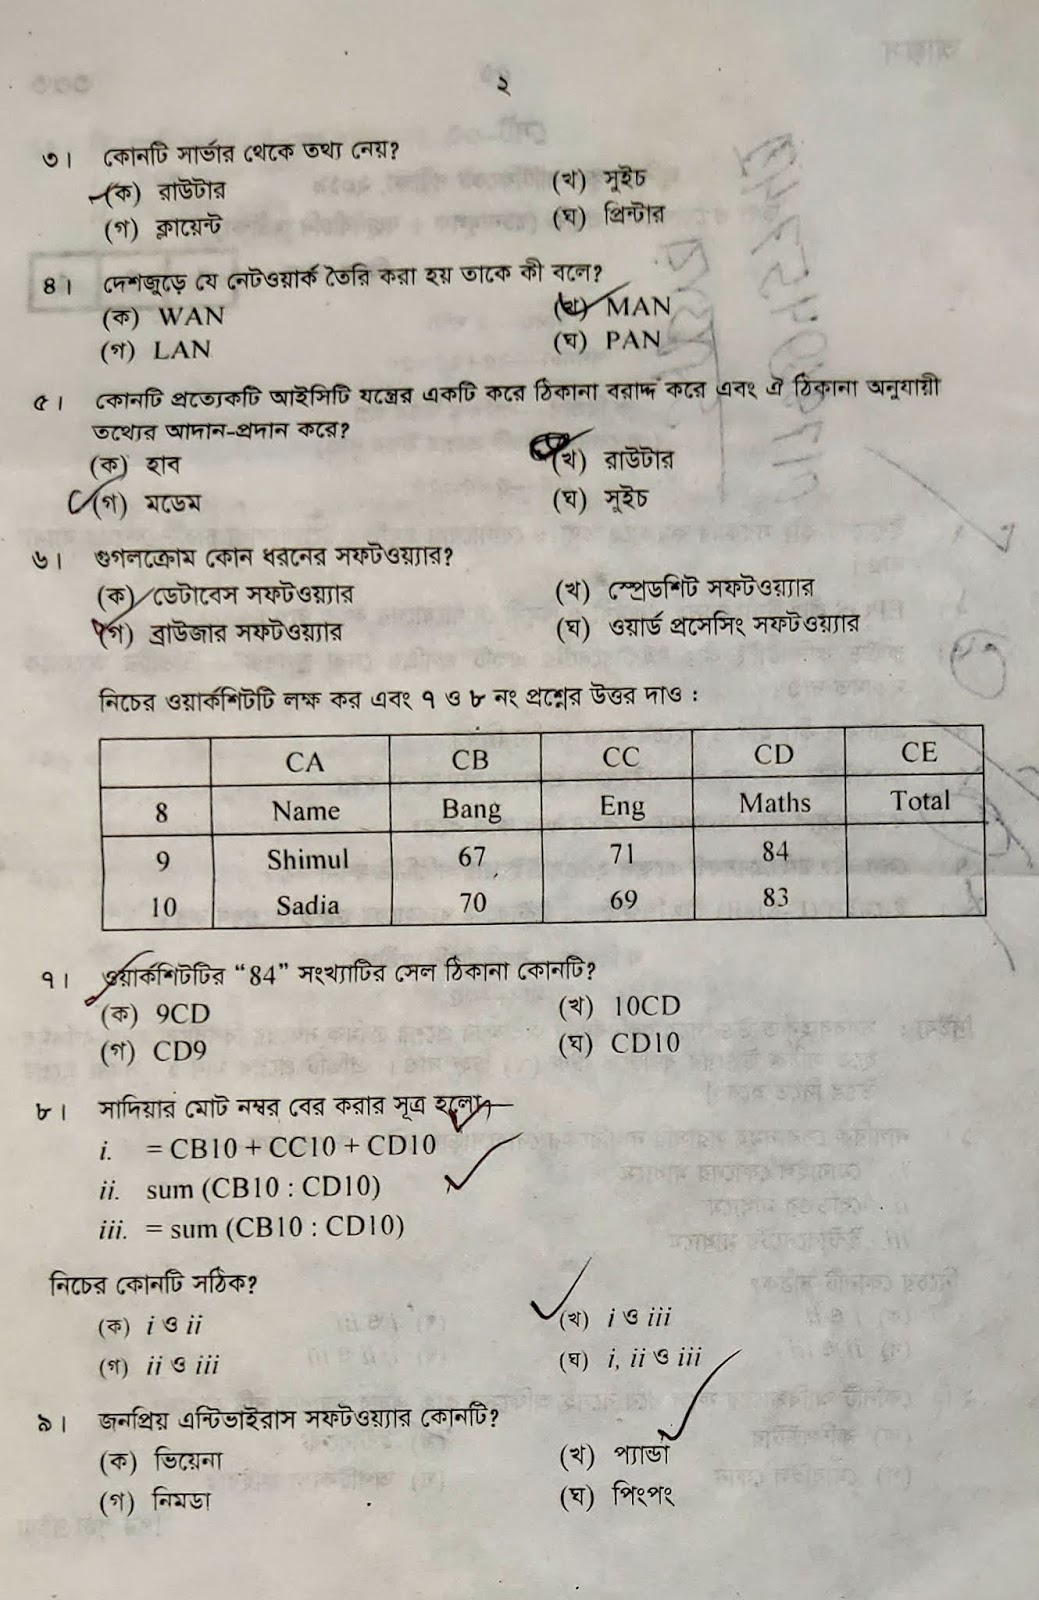 jsc question, jsc suggestion, question paper, syllabus for dhaka board, question hack